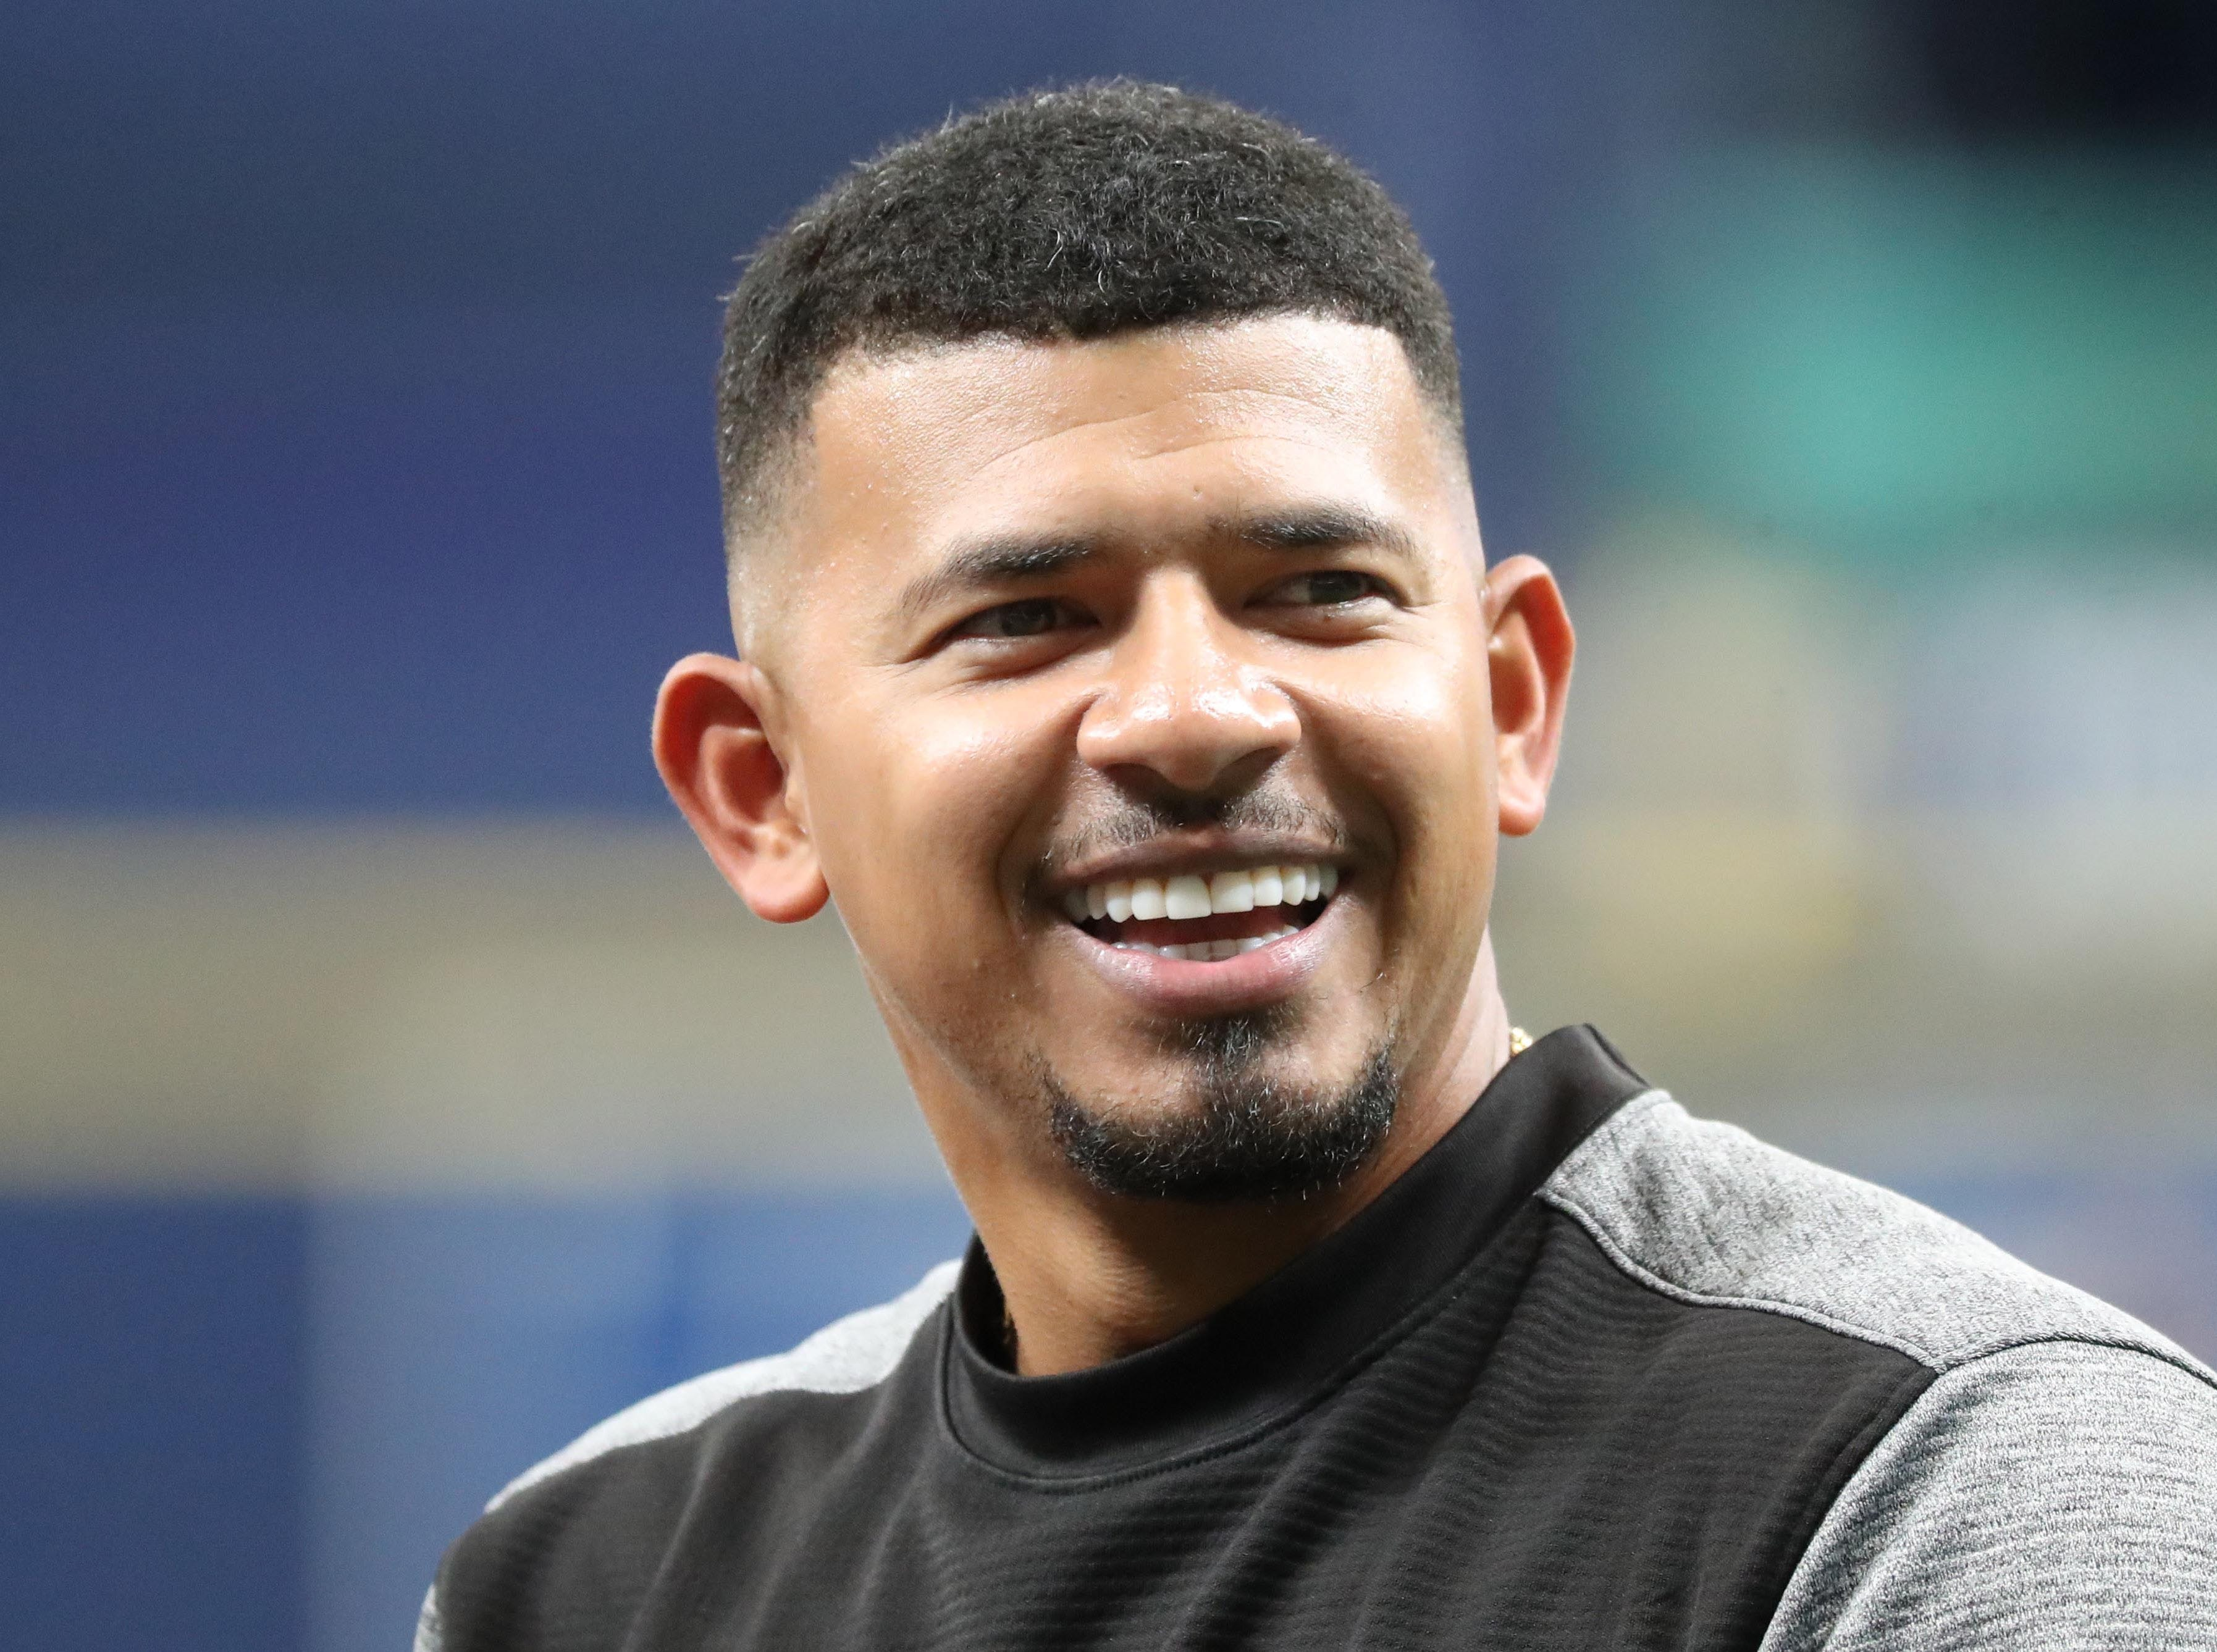 May 7, 2019; St. Petersburg, FL, USA; Arizona Diamondbacks third baseman Eduardo Escobar (5) works out prior to the game against the Tampa Bay Rays at Tropicana Field. Mandatory Credit: Kim Klement-USA TODAY Sports